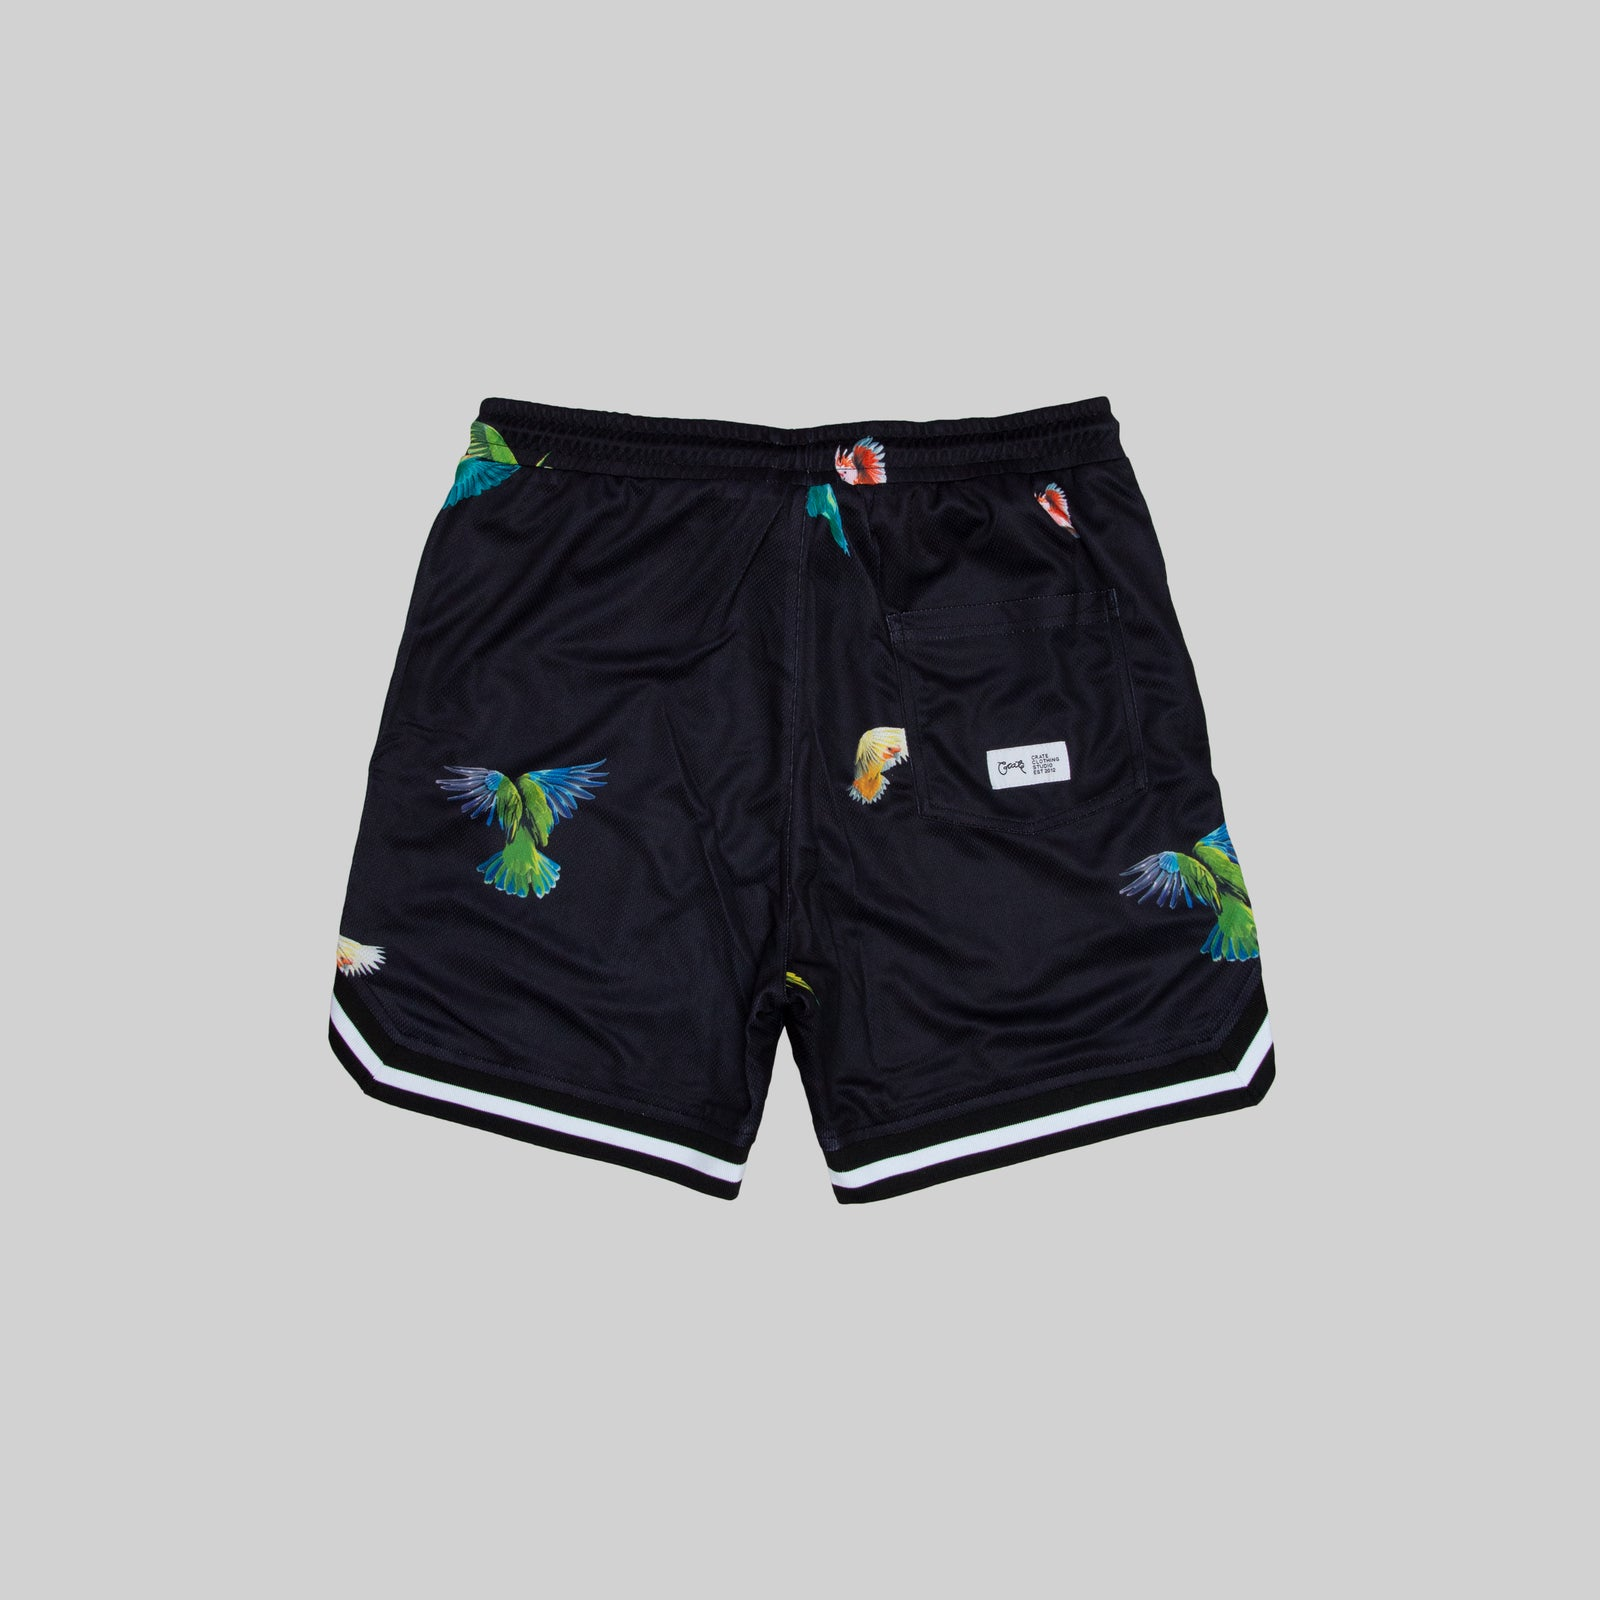 Mens Parrot Gang Shorts